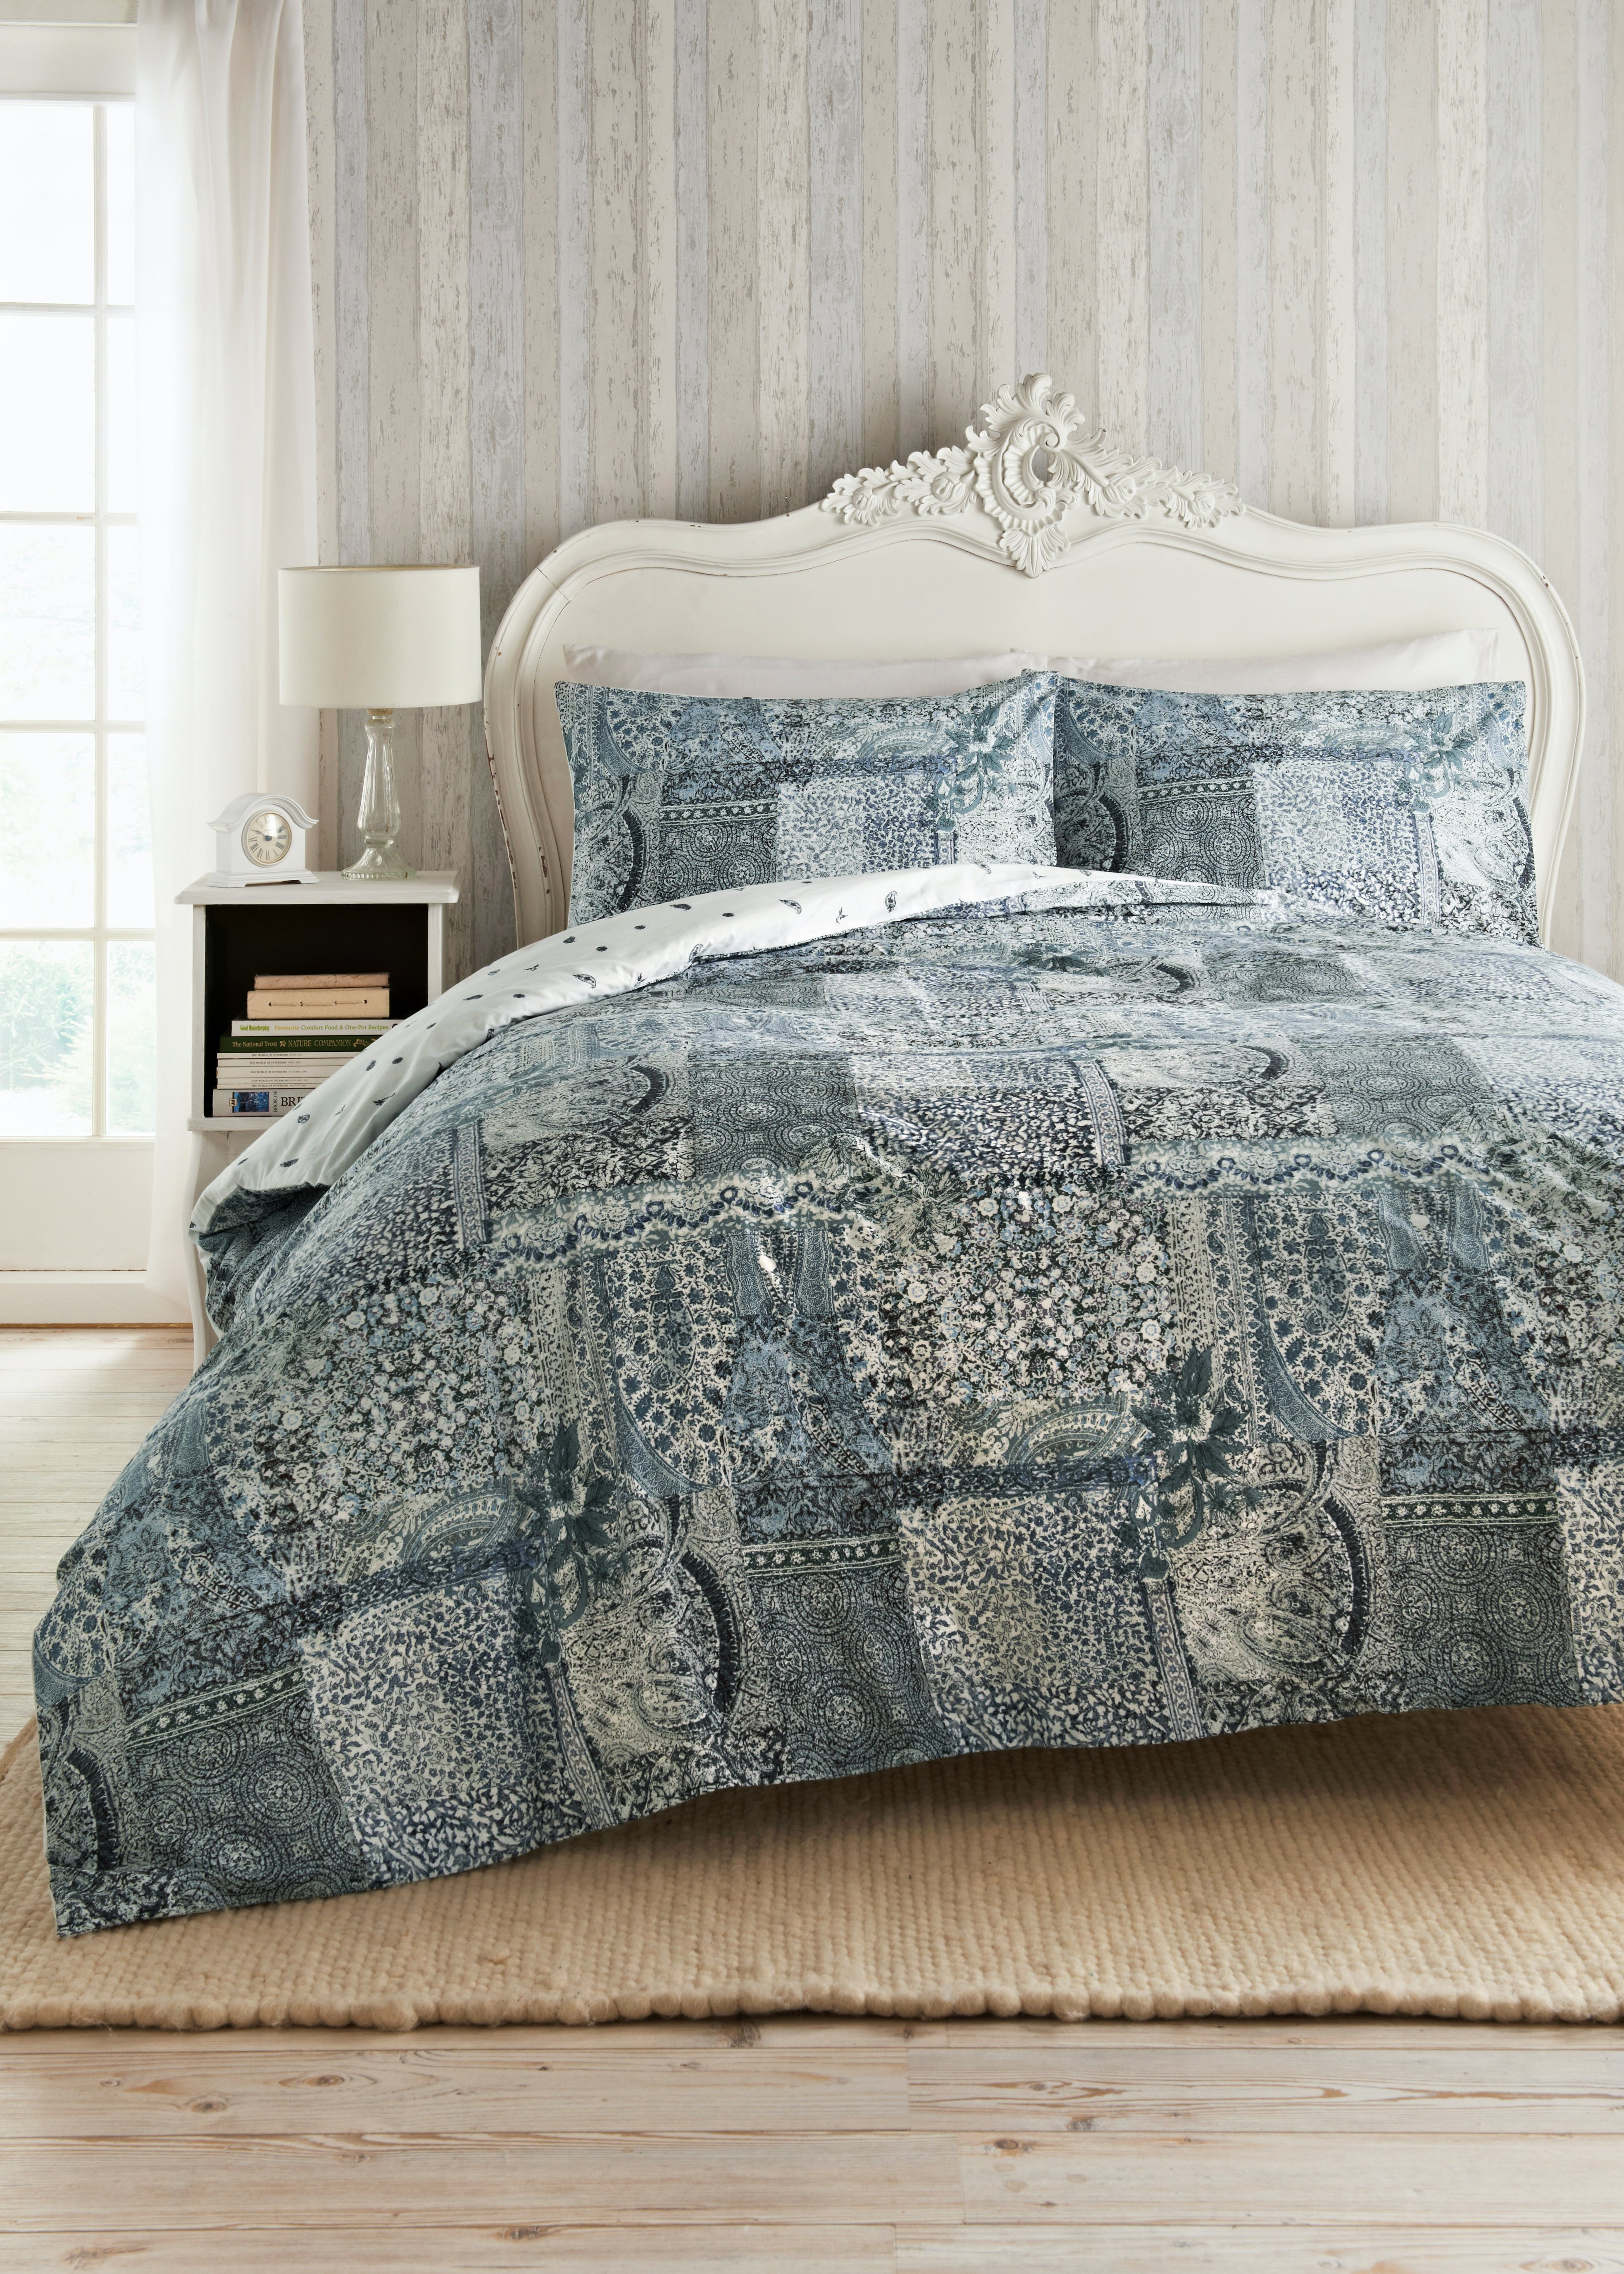 duvet ditsy patchwork iliv from furnishings bedding cover soft covers decoupage floral